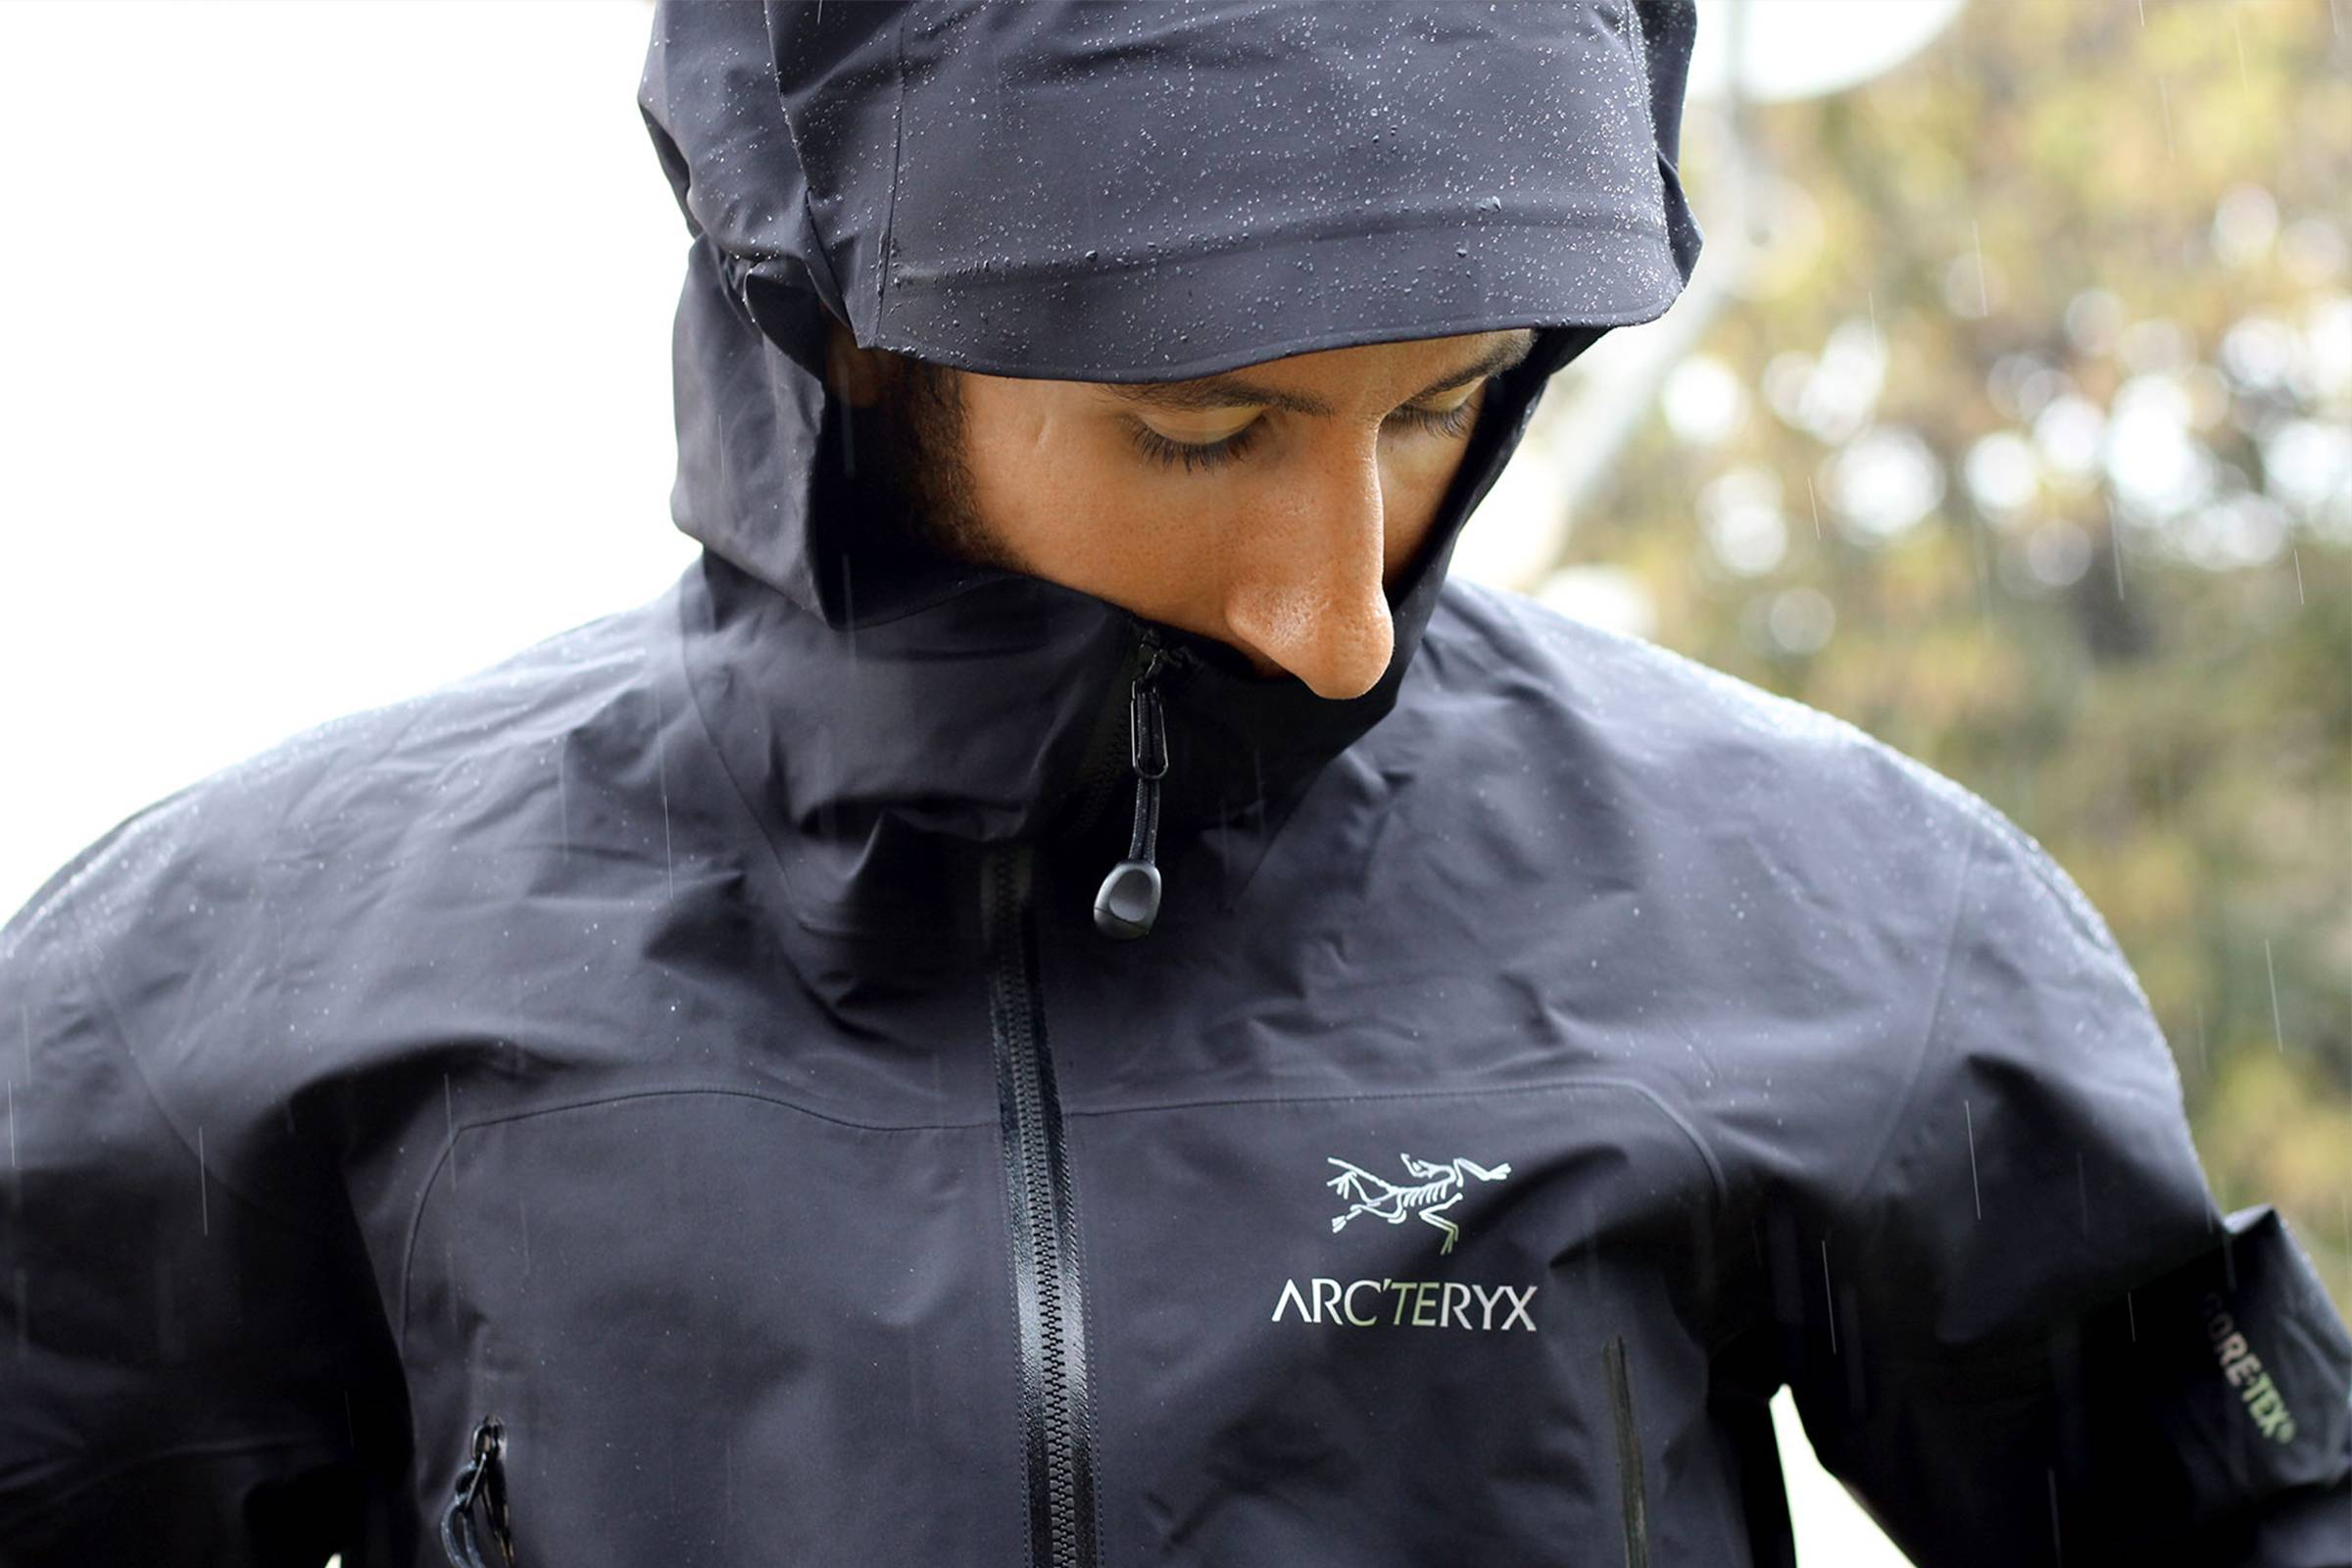 657a6bef23a How to Buy Used Arc'teryx (According to Arc'teryx) - Guide To Buying ...